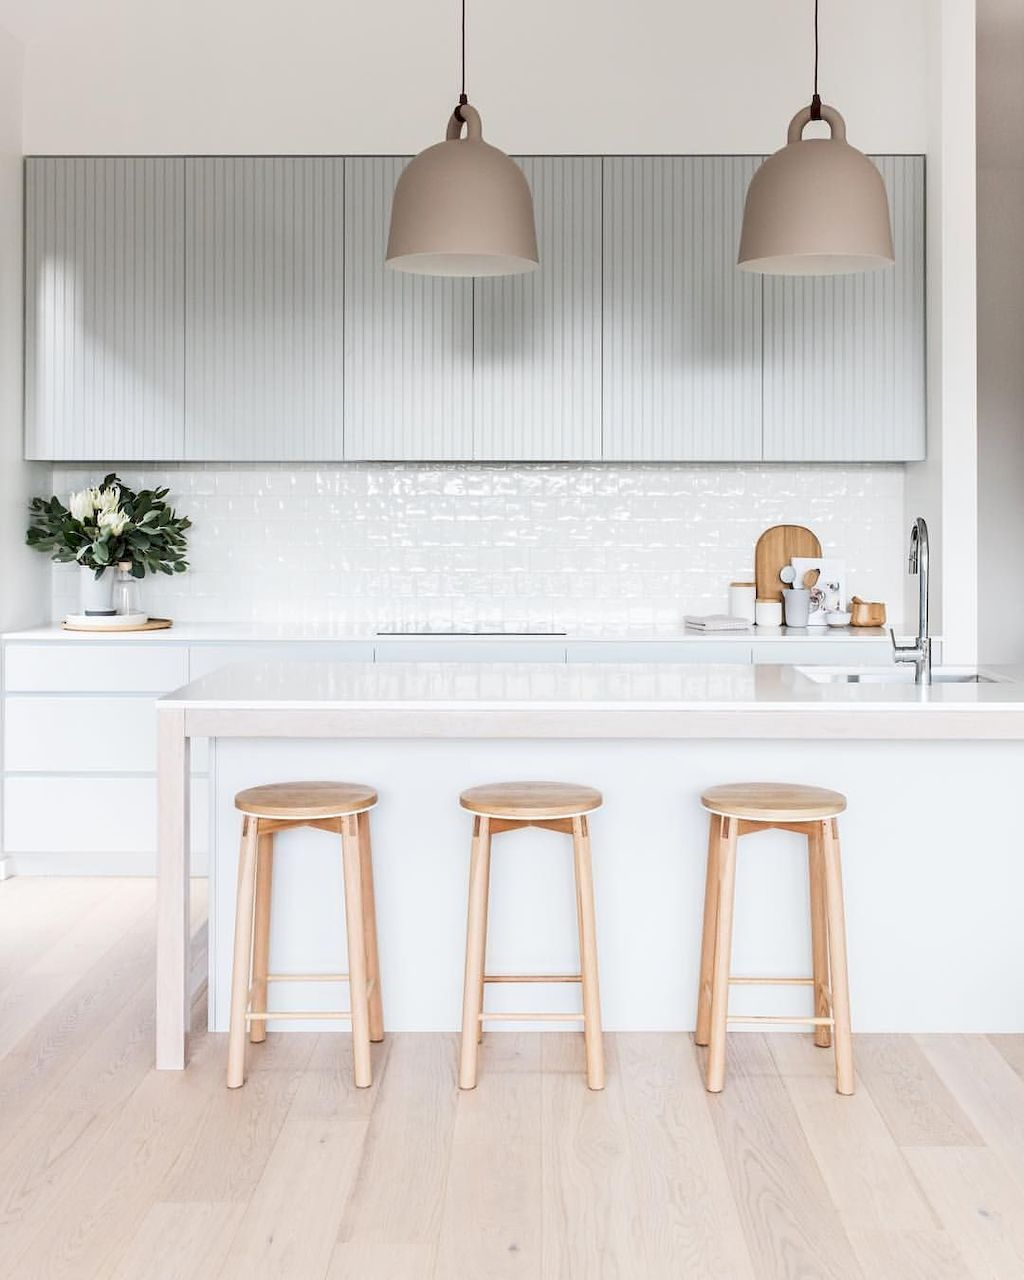 50 Minimalist Bar Stool Ideas For Small Kitchen Bar With Images